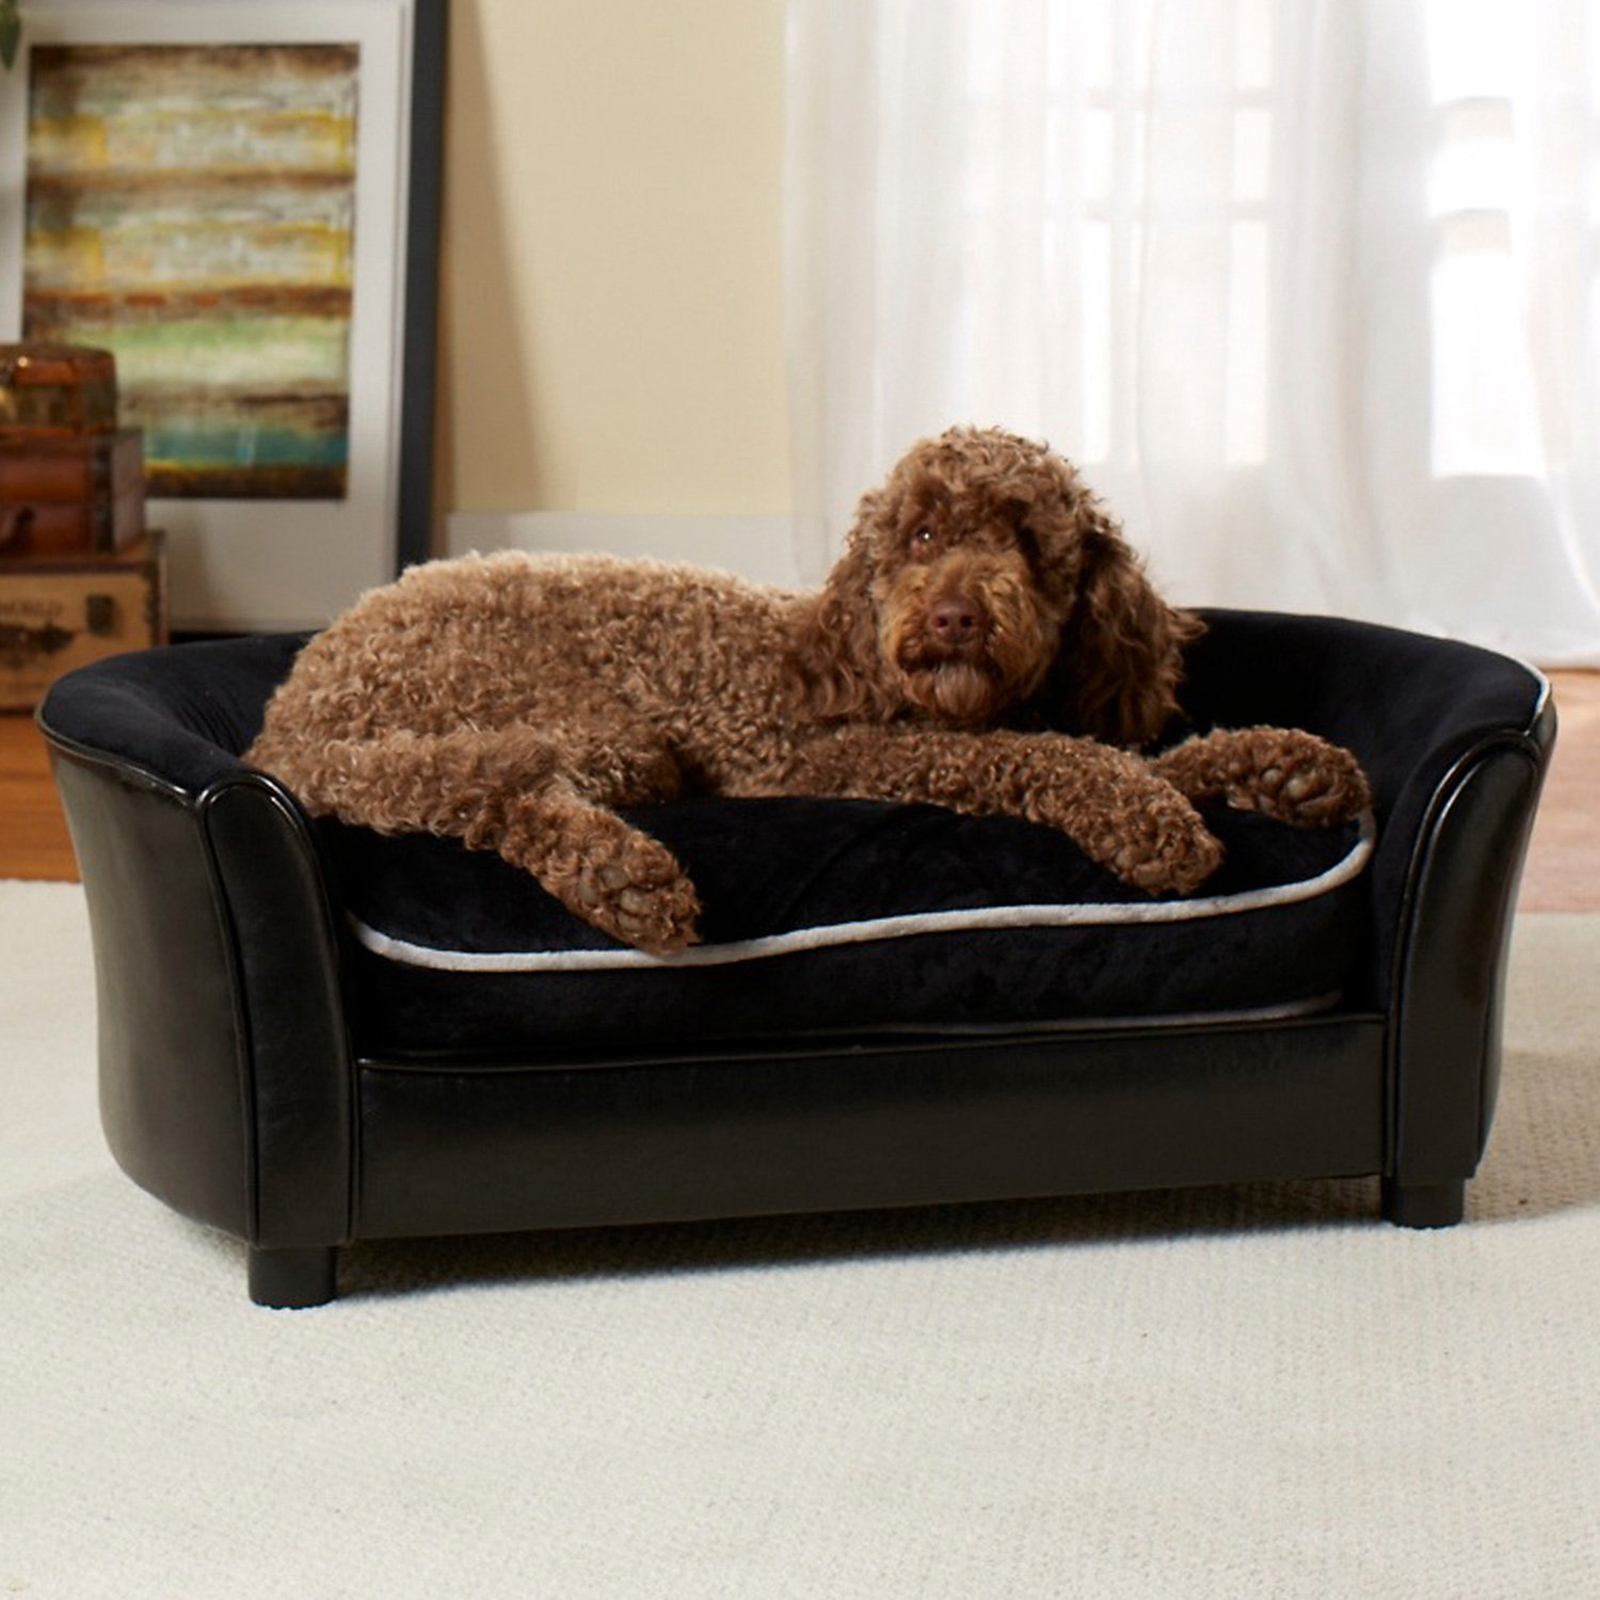 Enchanted Home Dog Pet Premium Ultra Plush Large Sofa Bed Lounge Furniture Black Ebay